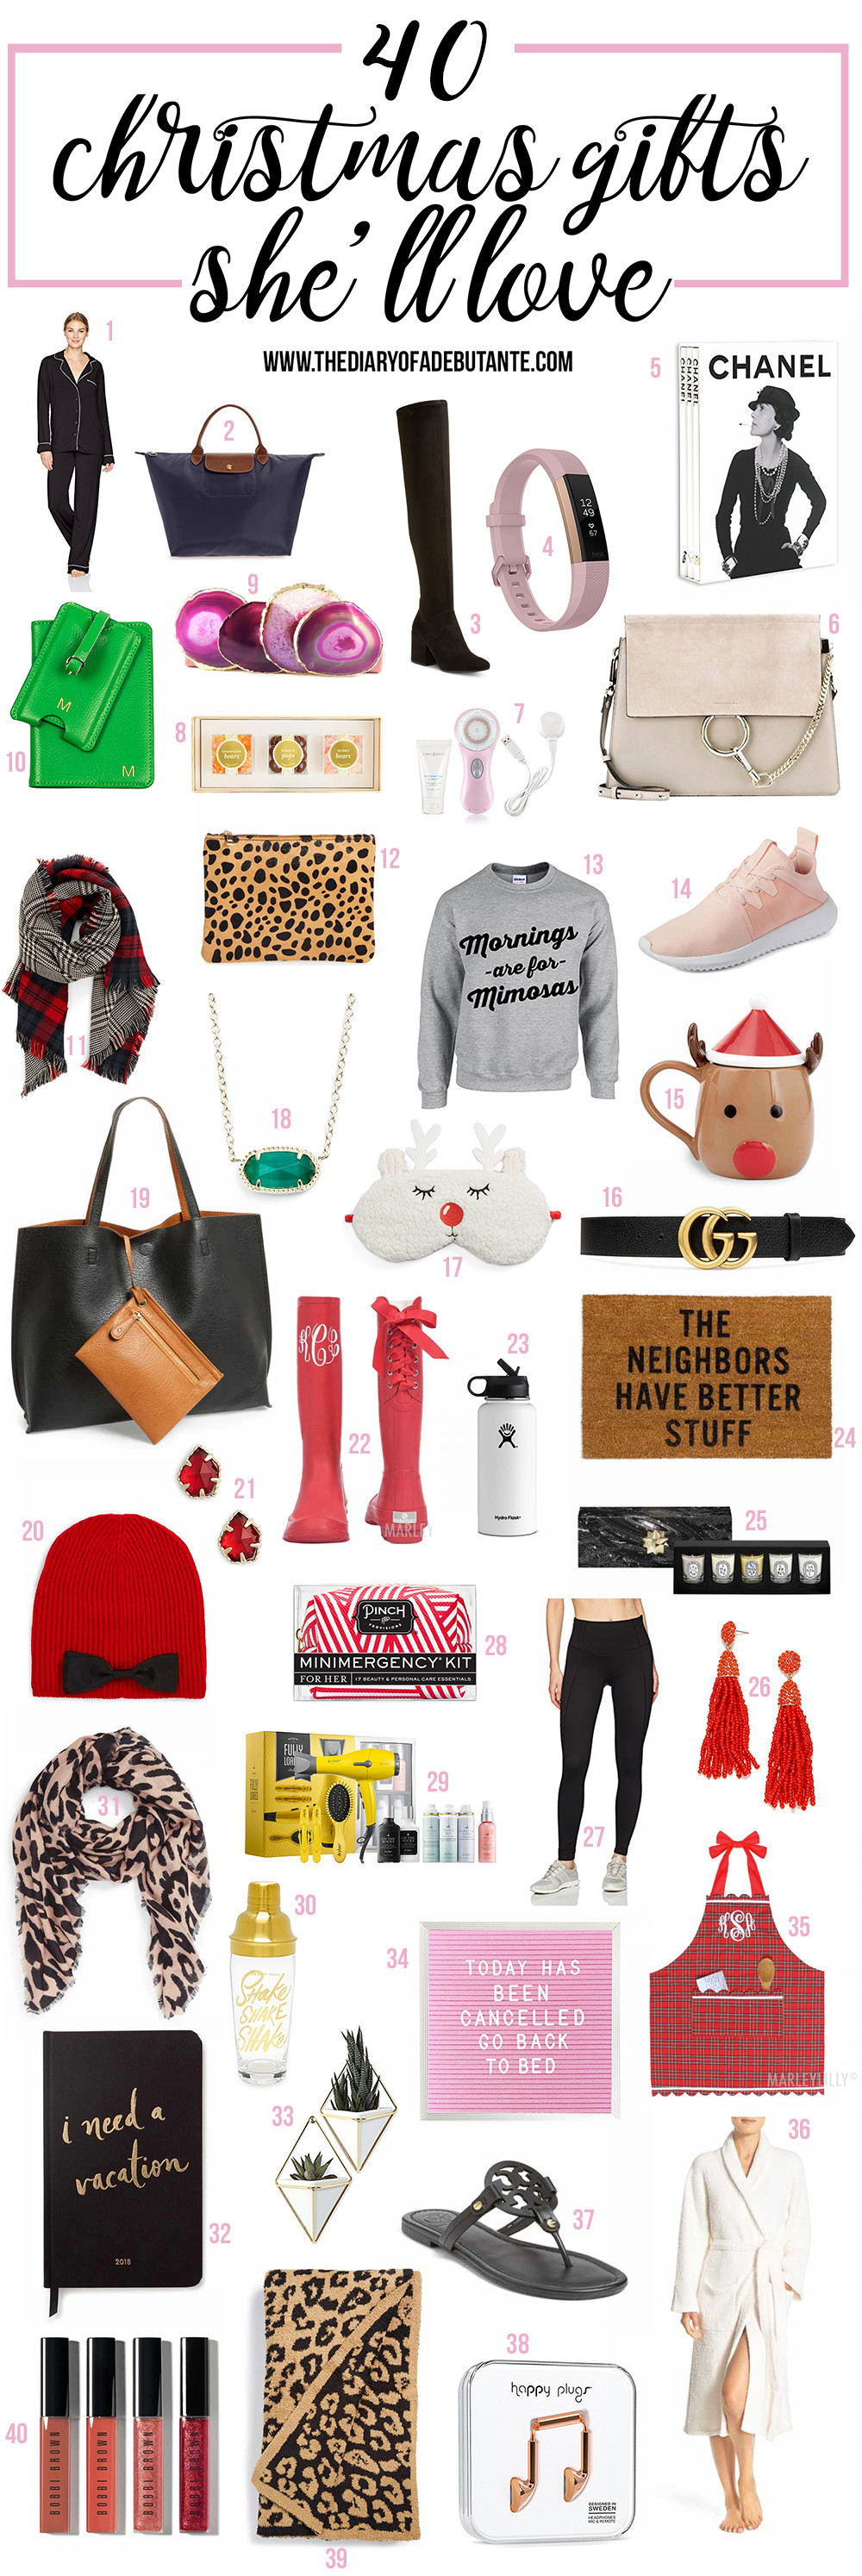 Best ideas about Girlfriend Christmas Gift Ideas . Save or Pin Cool Gift Ideas for Girlfriend Mom or BFF this Holiday Now.